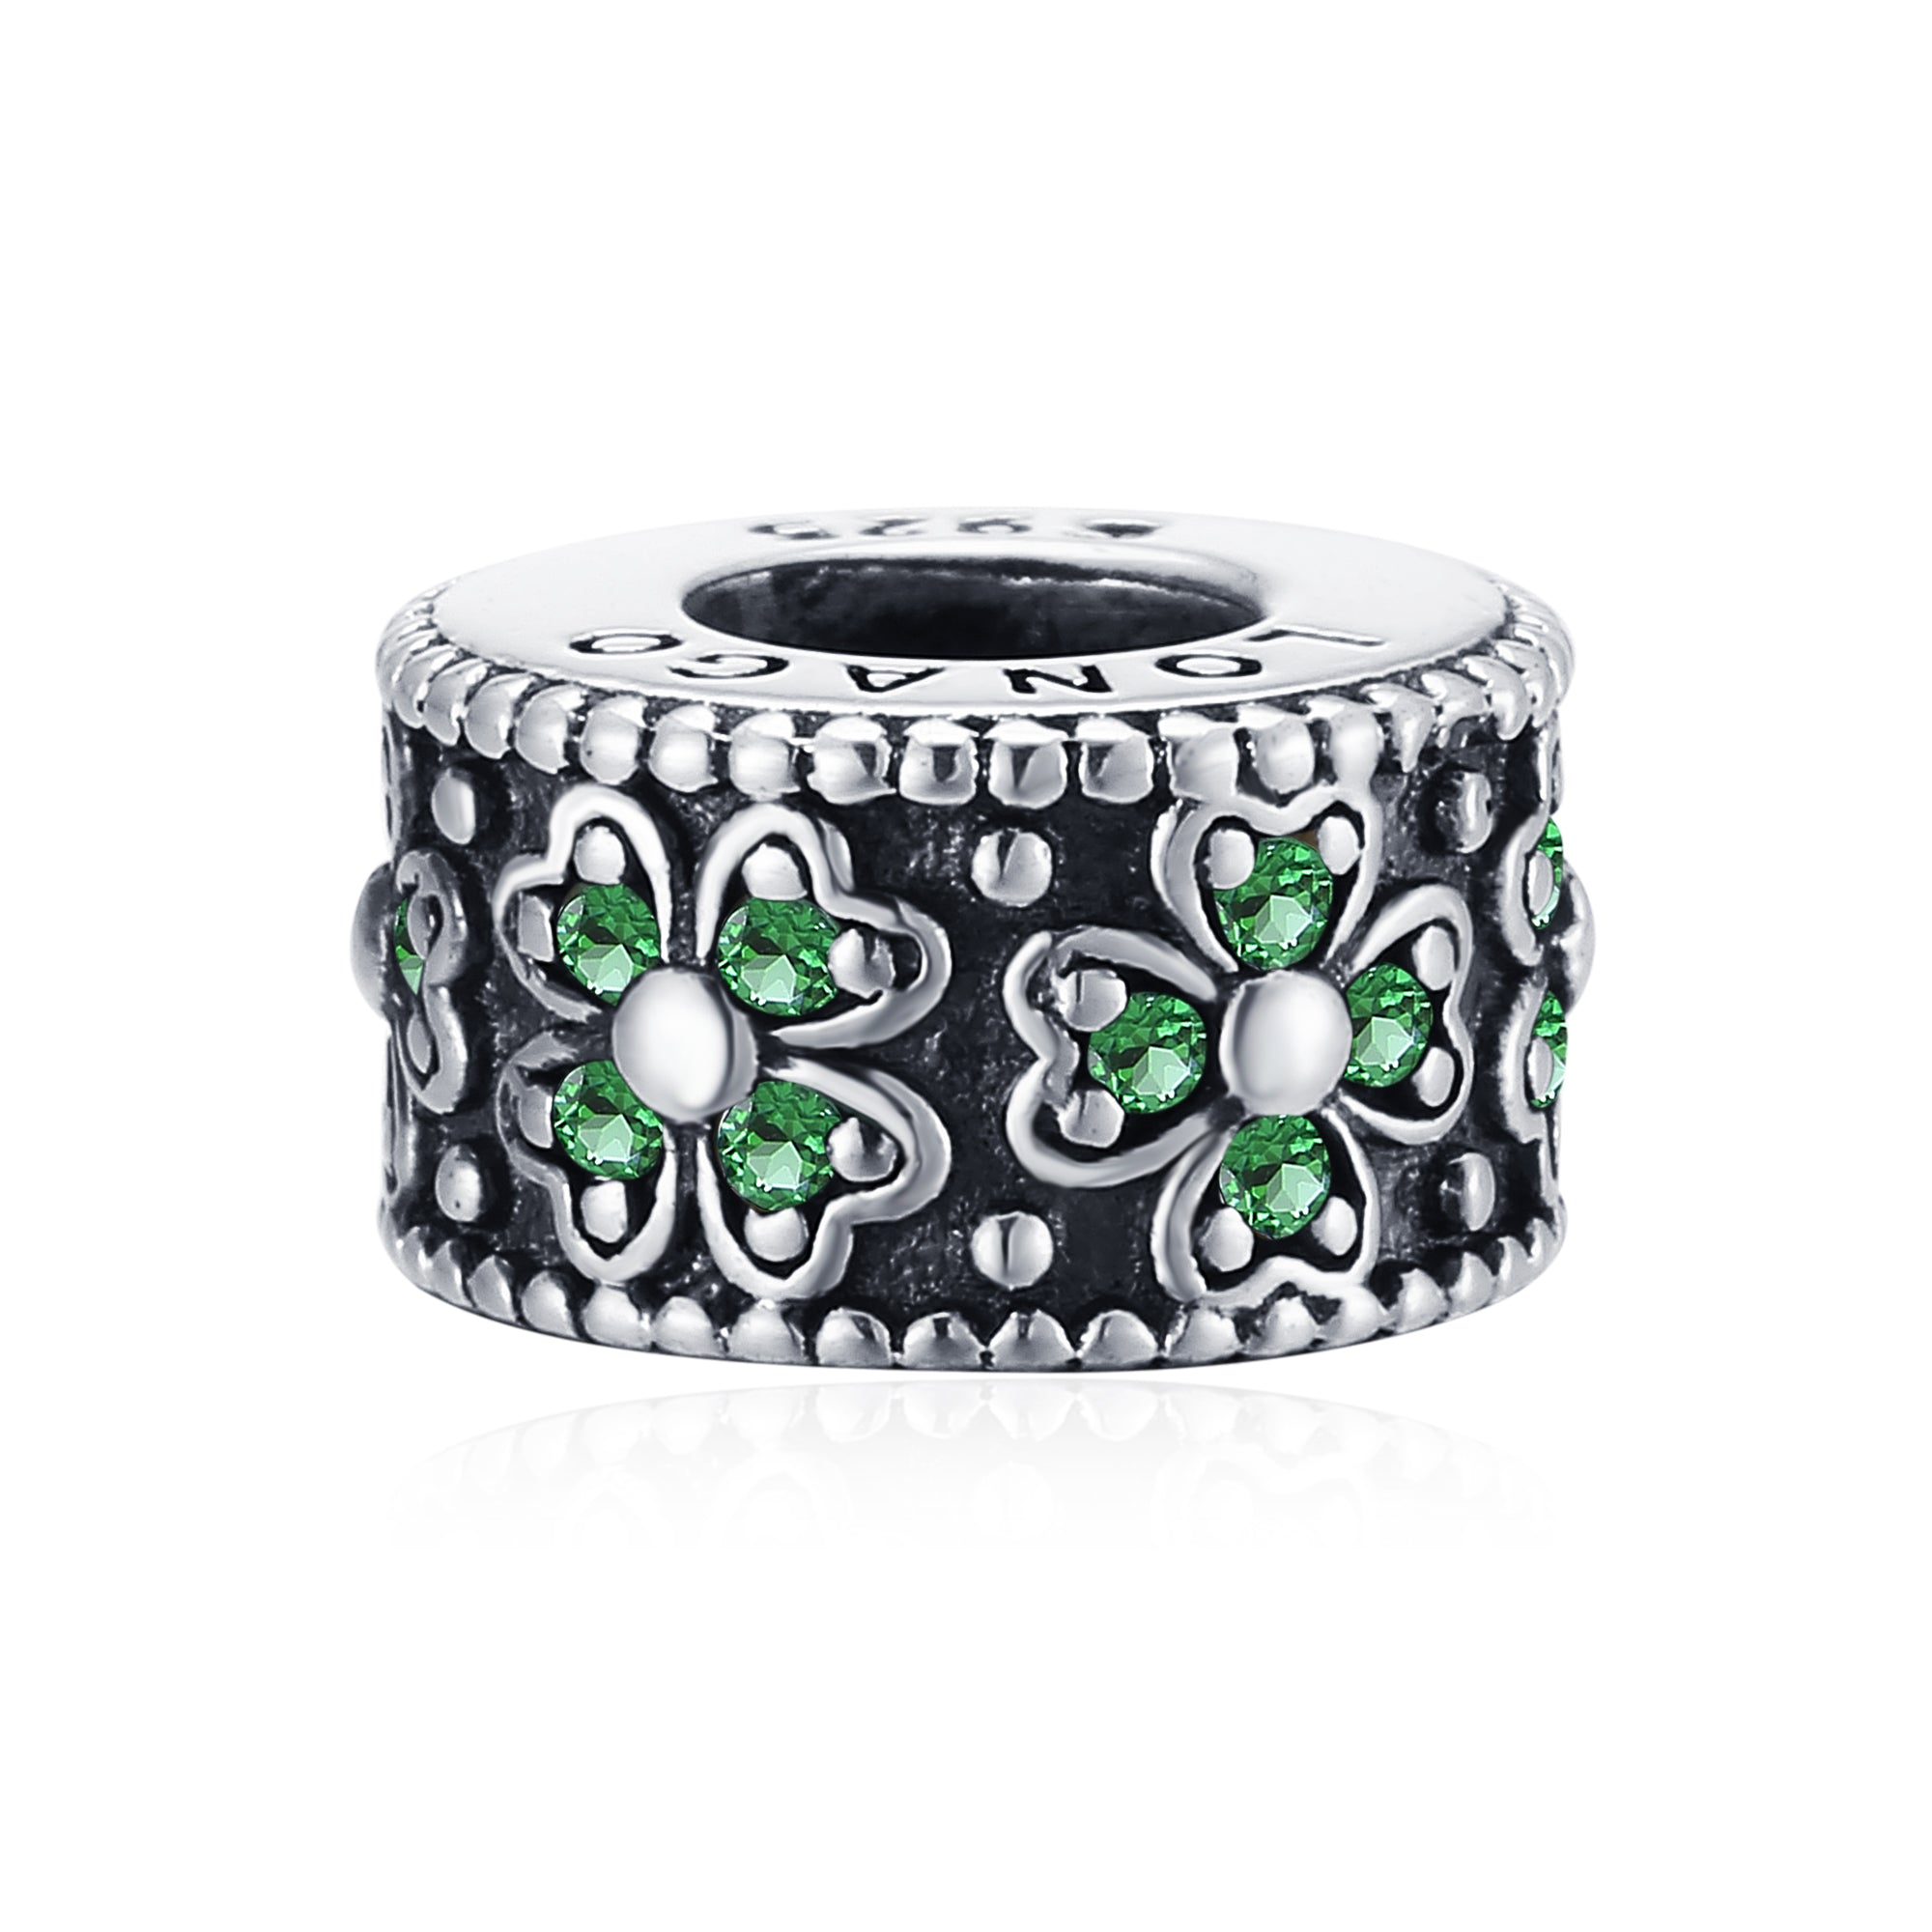 Green Cubic Zirconia Four-leaf Clover Oxidized Silver Flower Beads